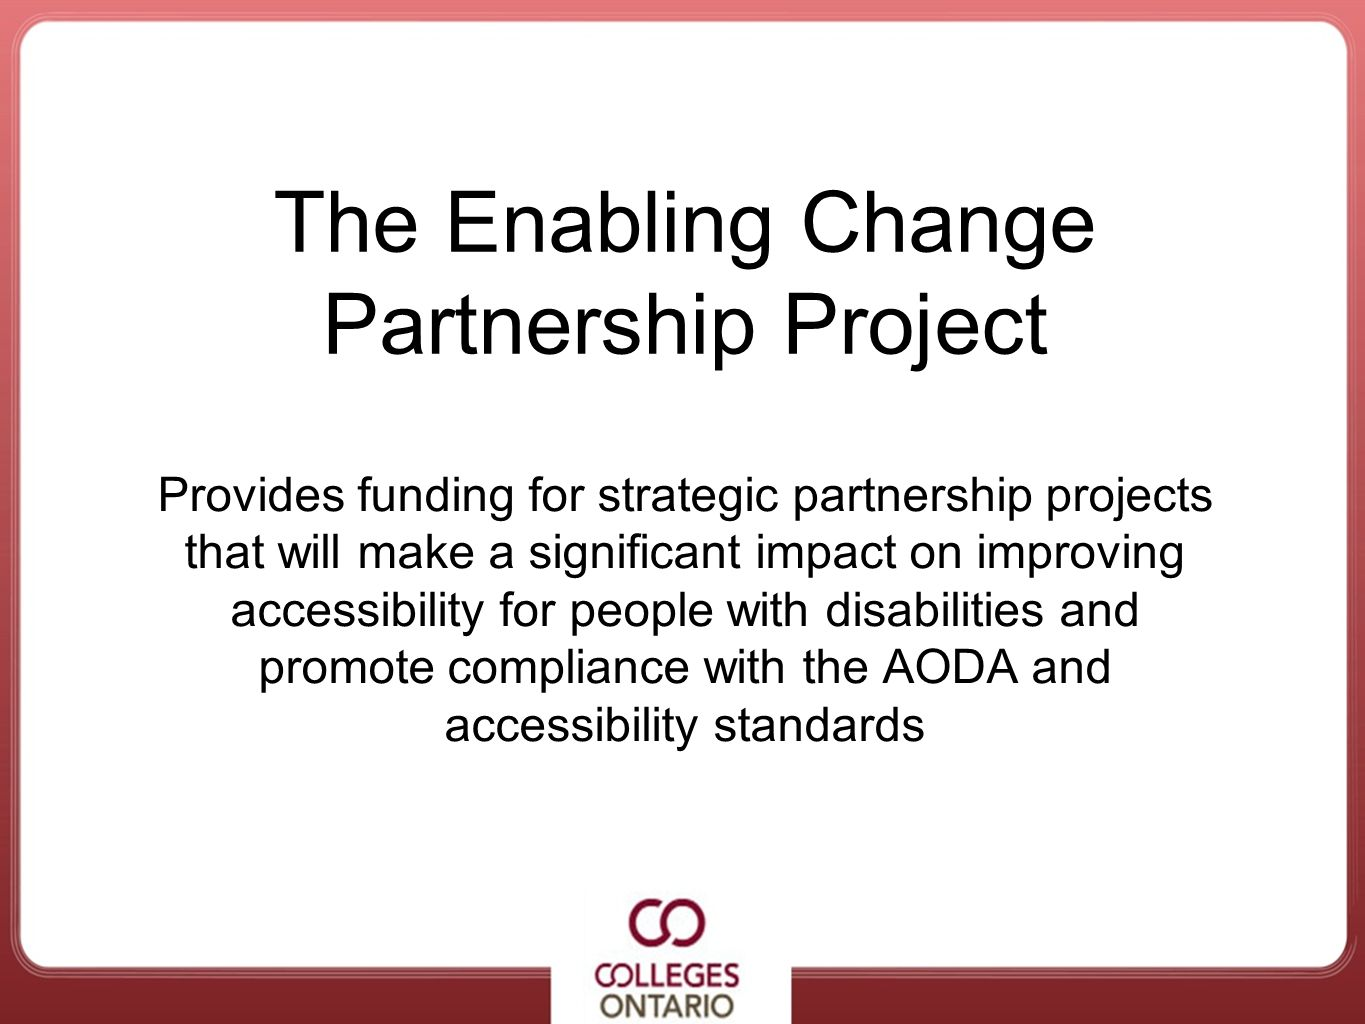 The Enabling Change Partnership Project